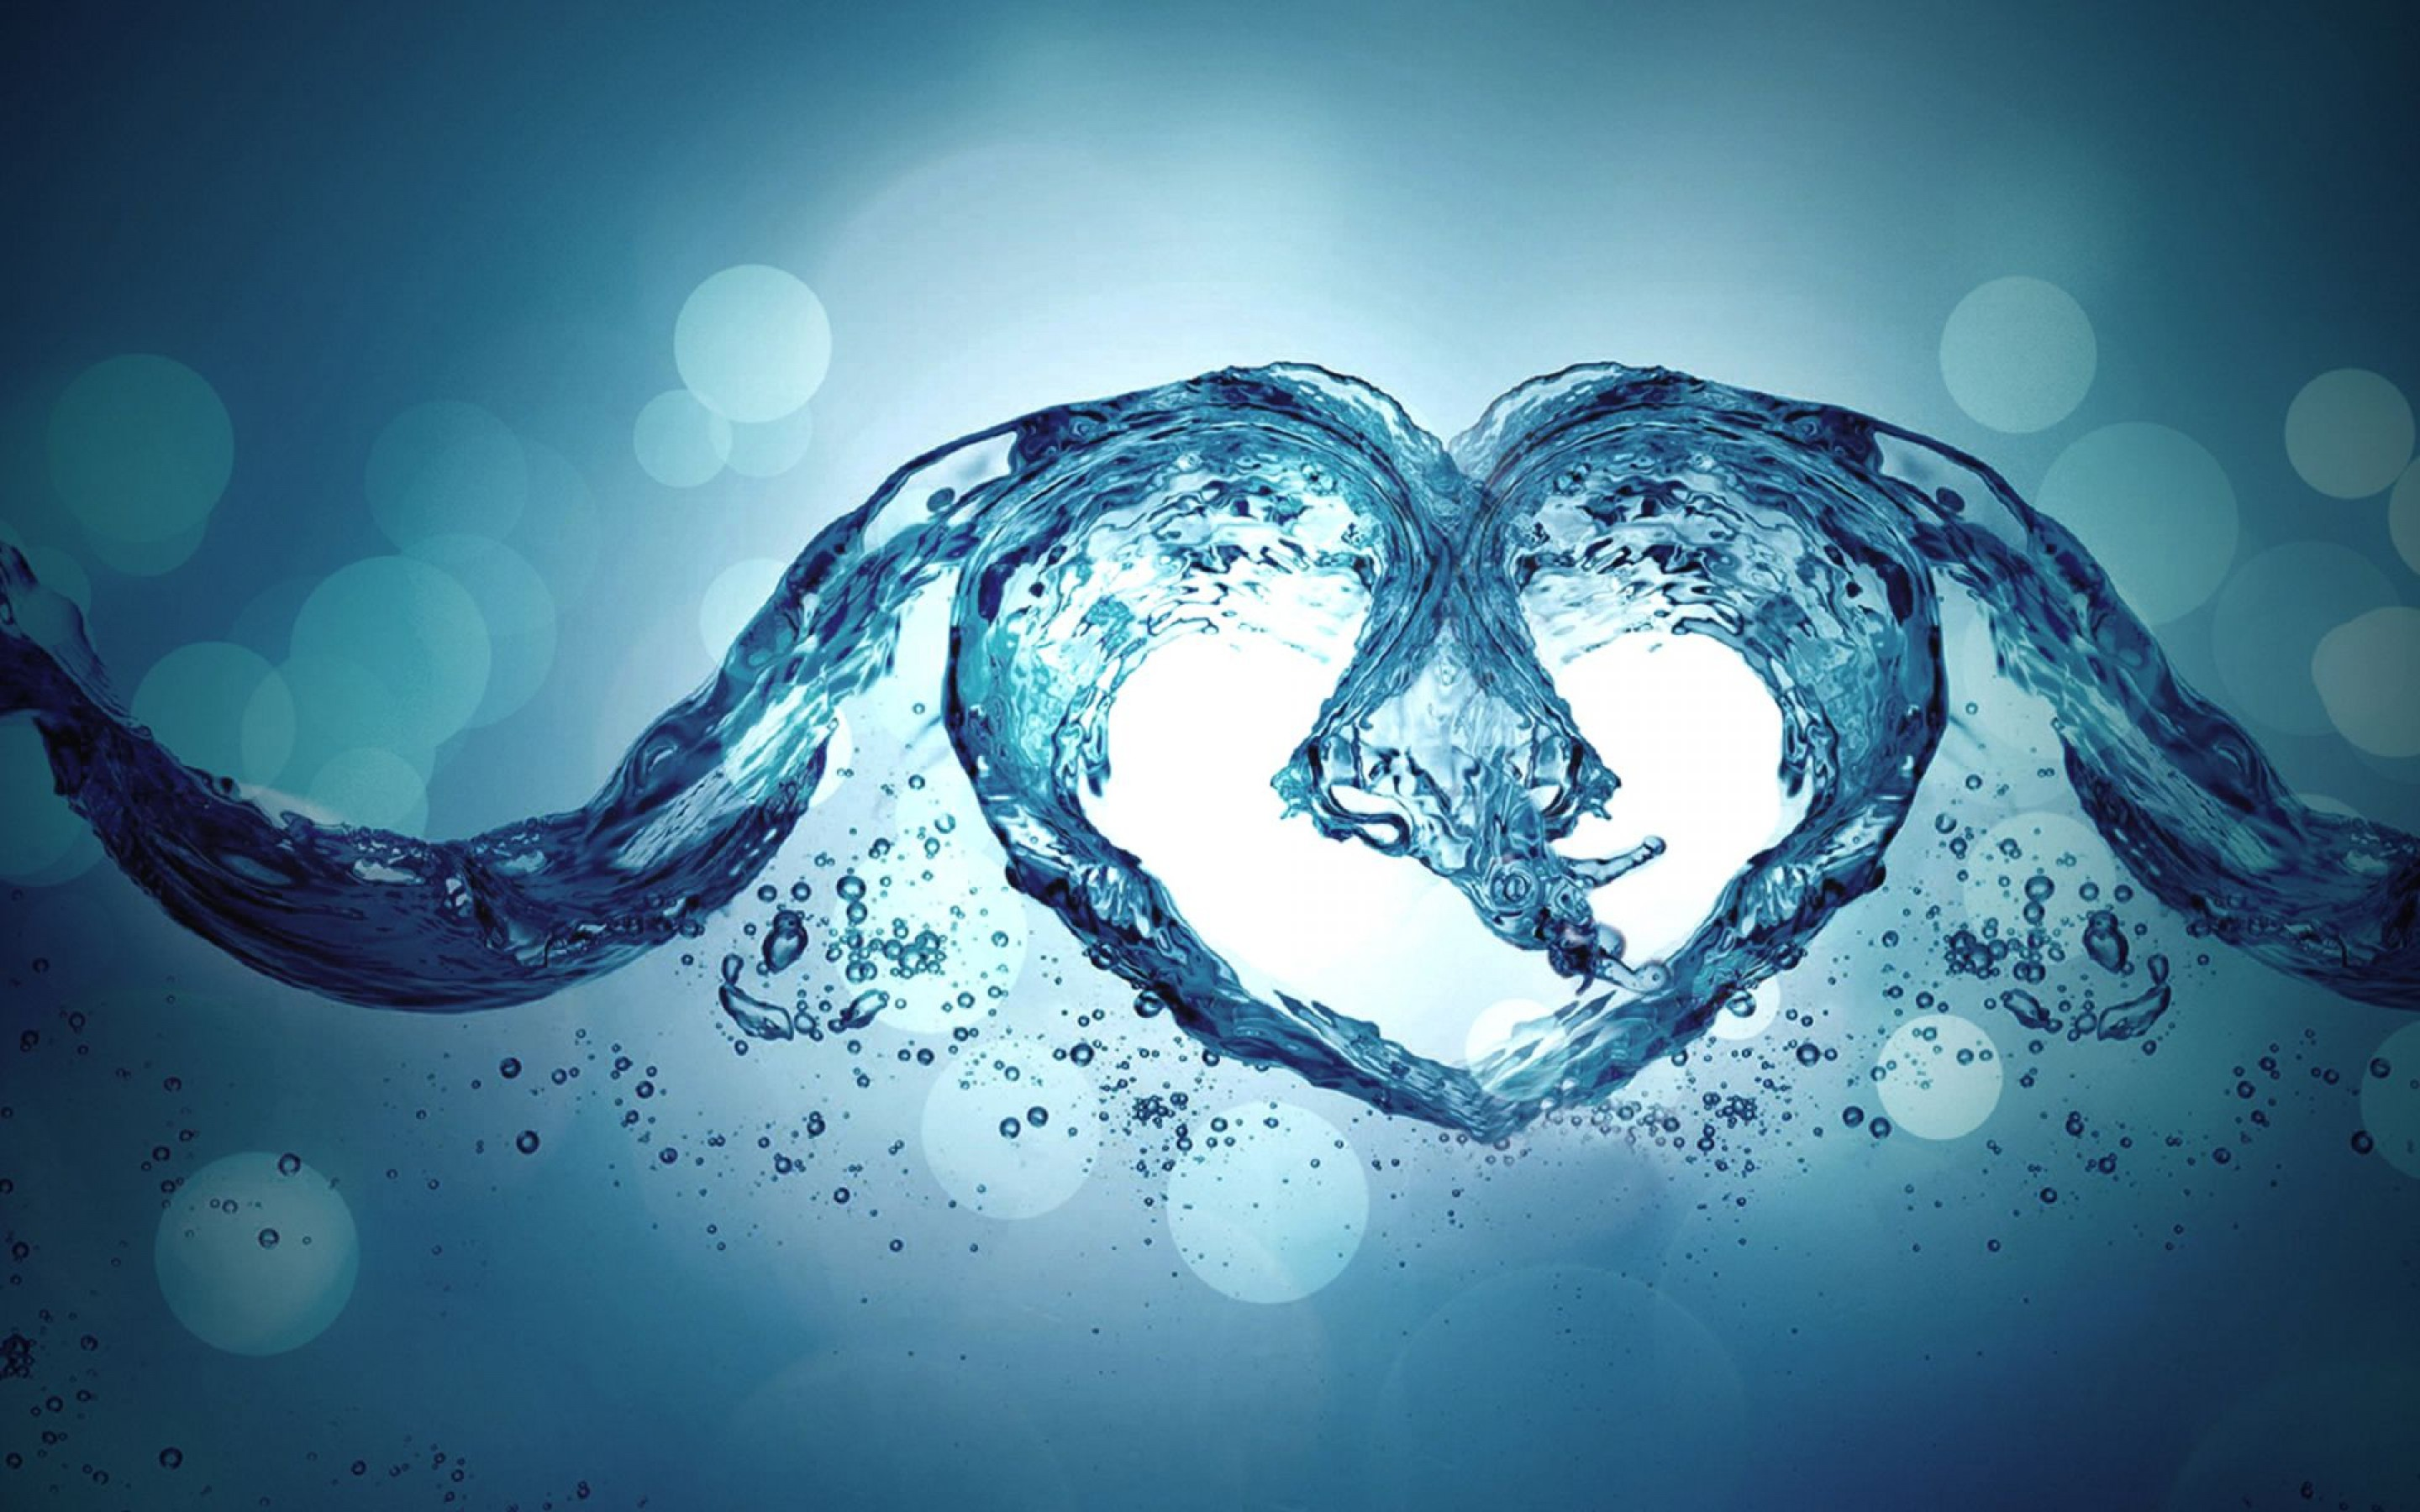 Water Design Wallpaper : Water art wallpapers